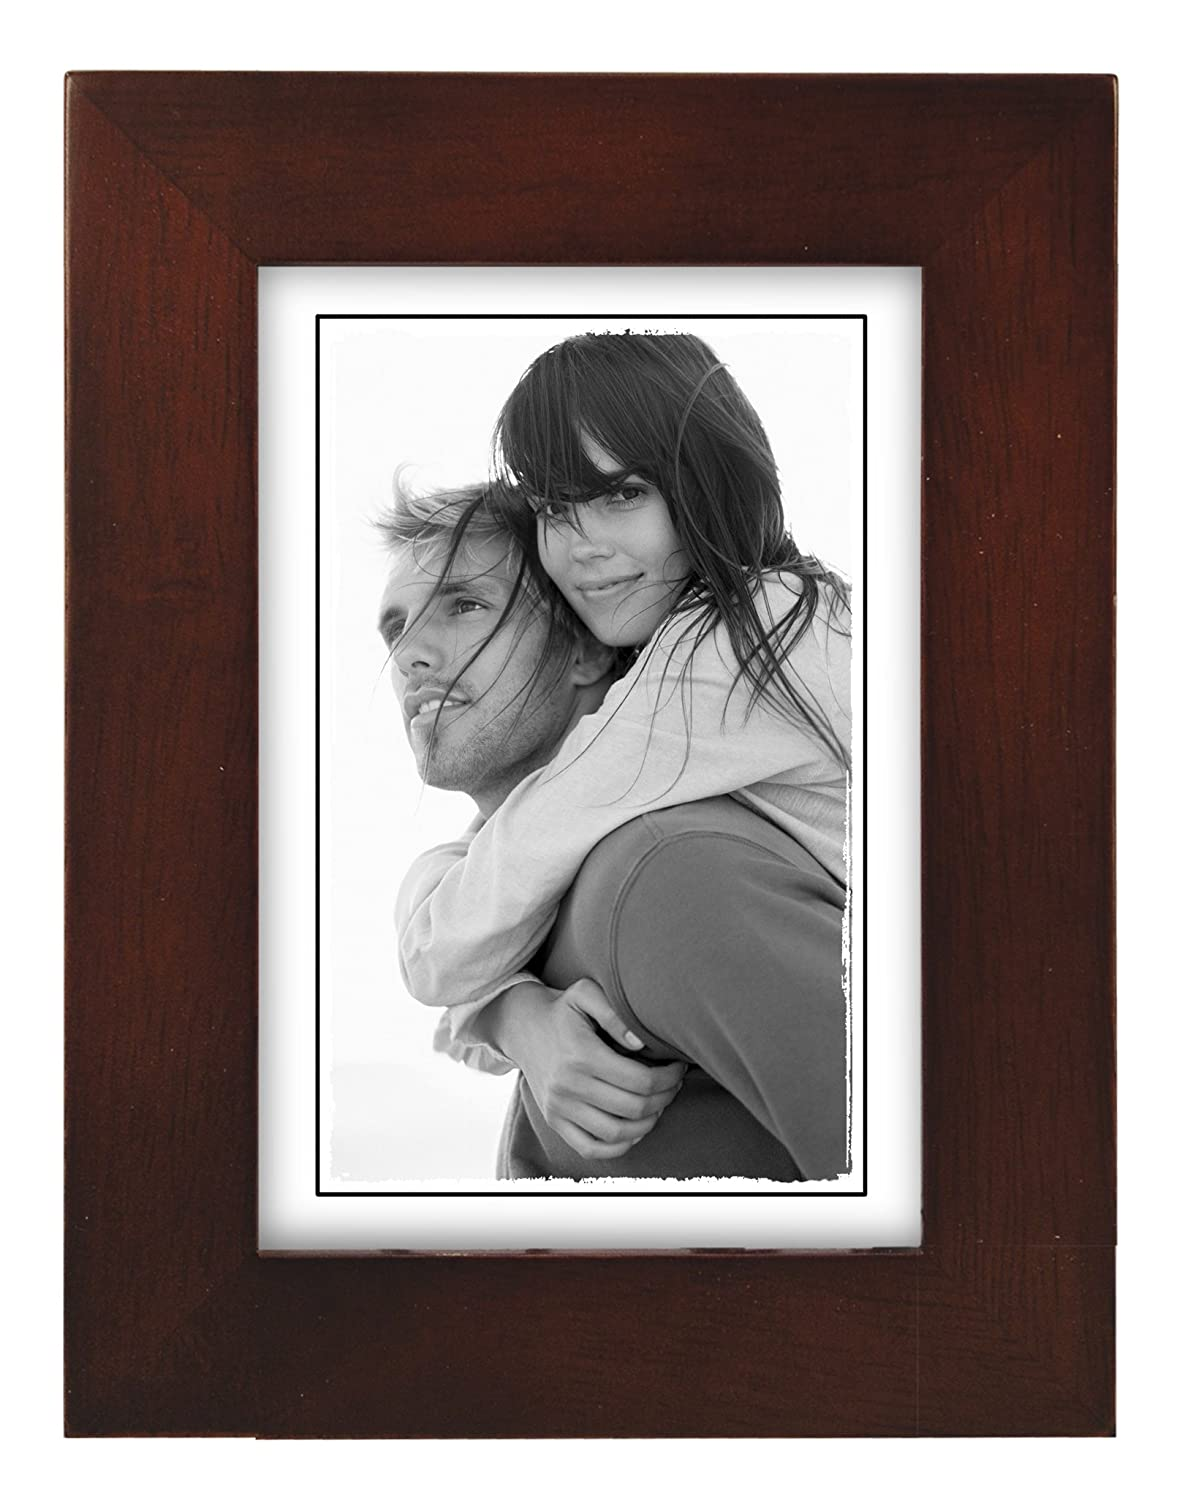 Amazon 8x10 black wood picture frame made to display amazon 8x10 black wood picture frame made to display pictures 8x10 wide molding real glass wall mount or table top single frames jeuxipadfo Gallery